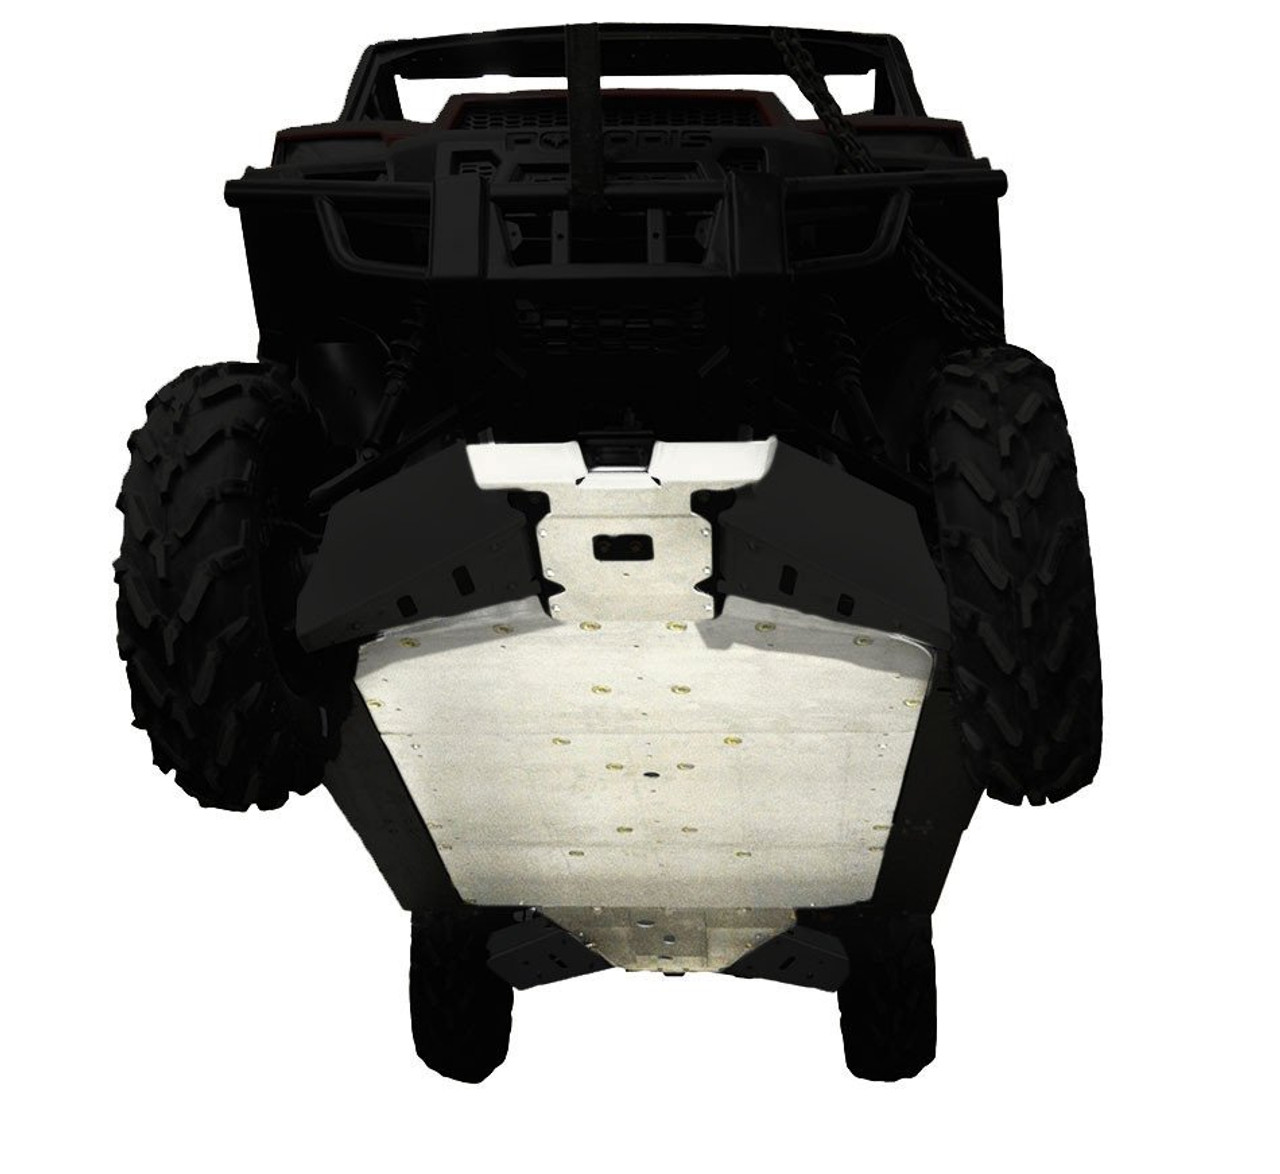 5-Piece Full Frame Skid Plate Set, Polaris Ranger Crew 900/1000